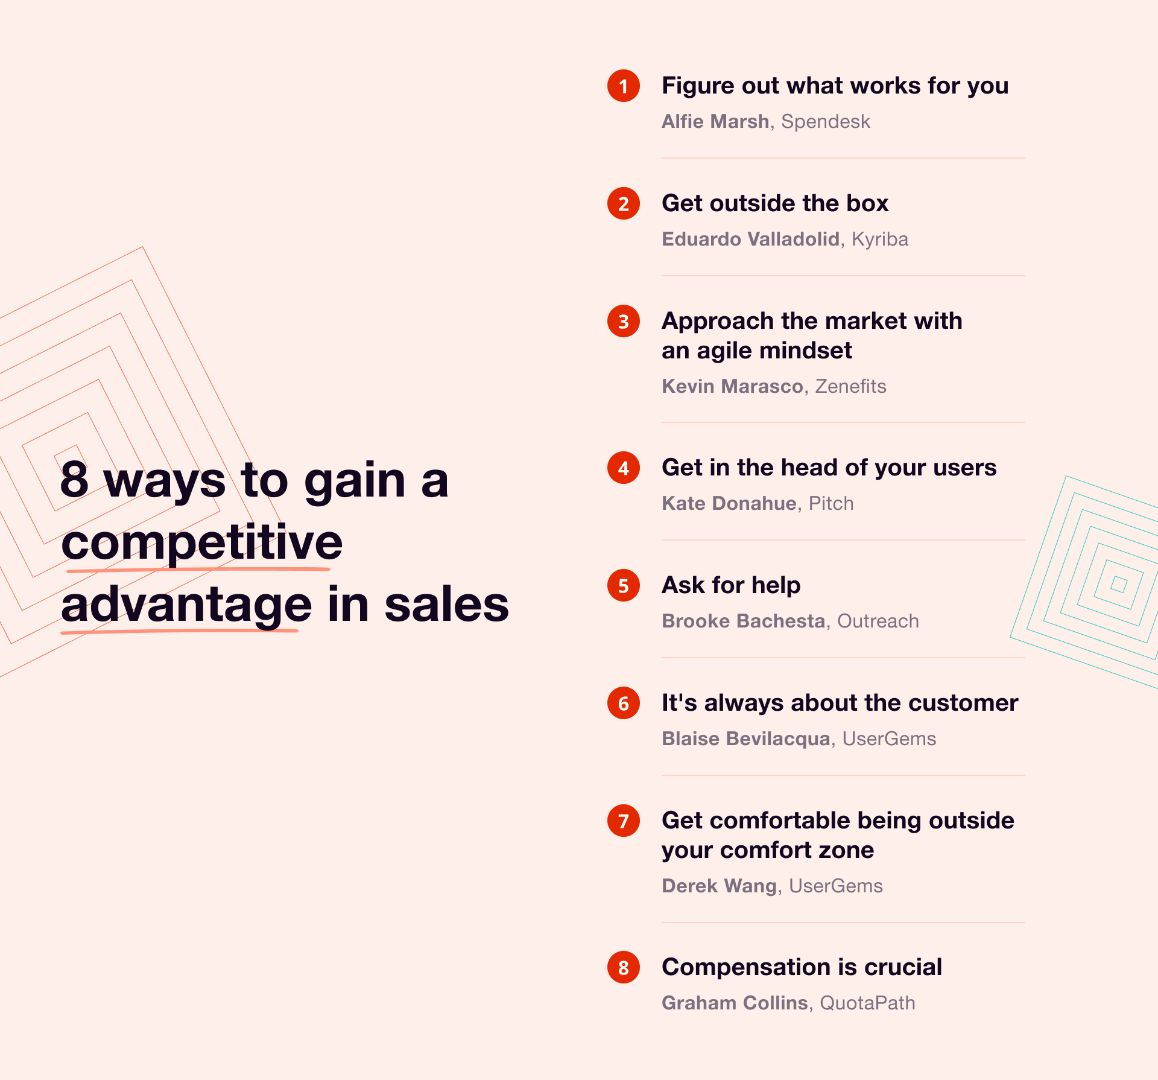 how to gain a competitive advantage in B2B sales